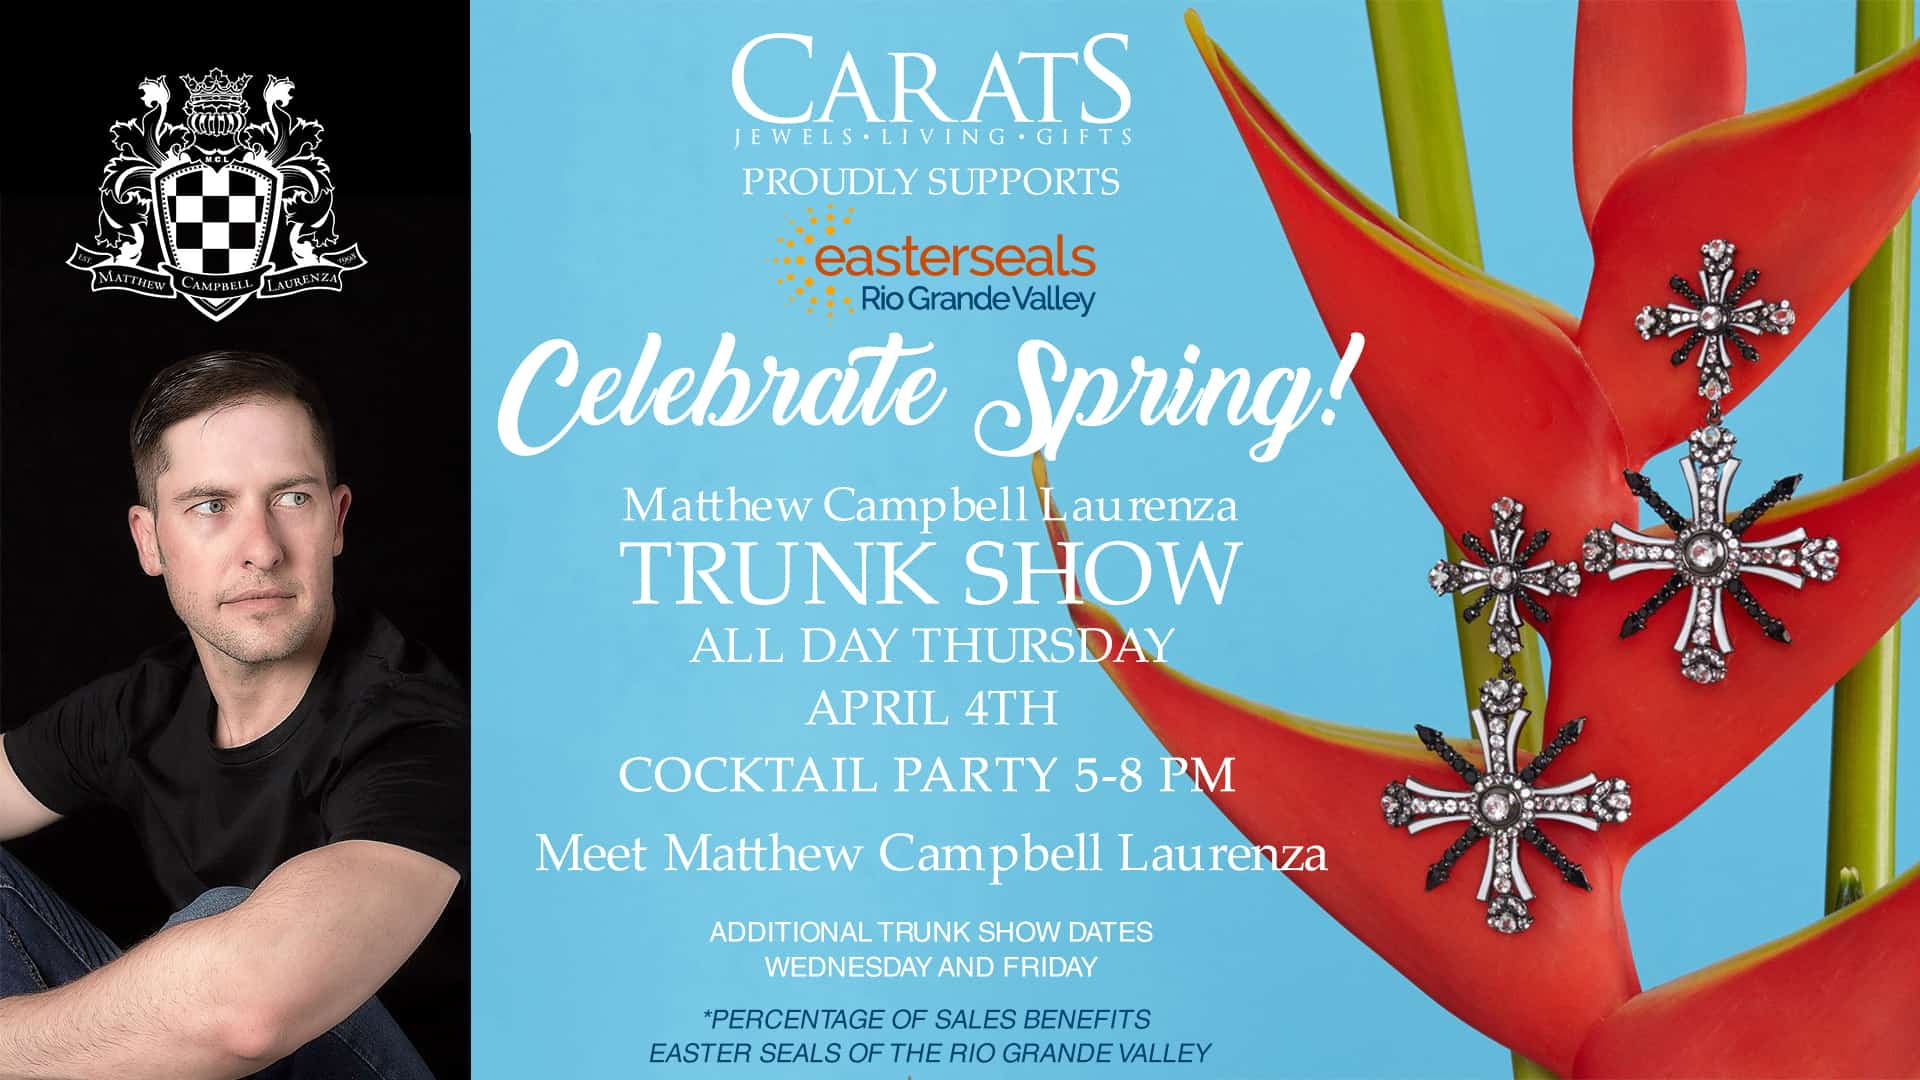 Celebrate Spring with Carats and Easter Seals of the Rio Grande Valley!